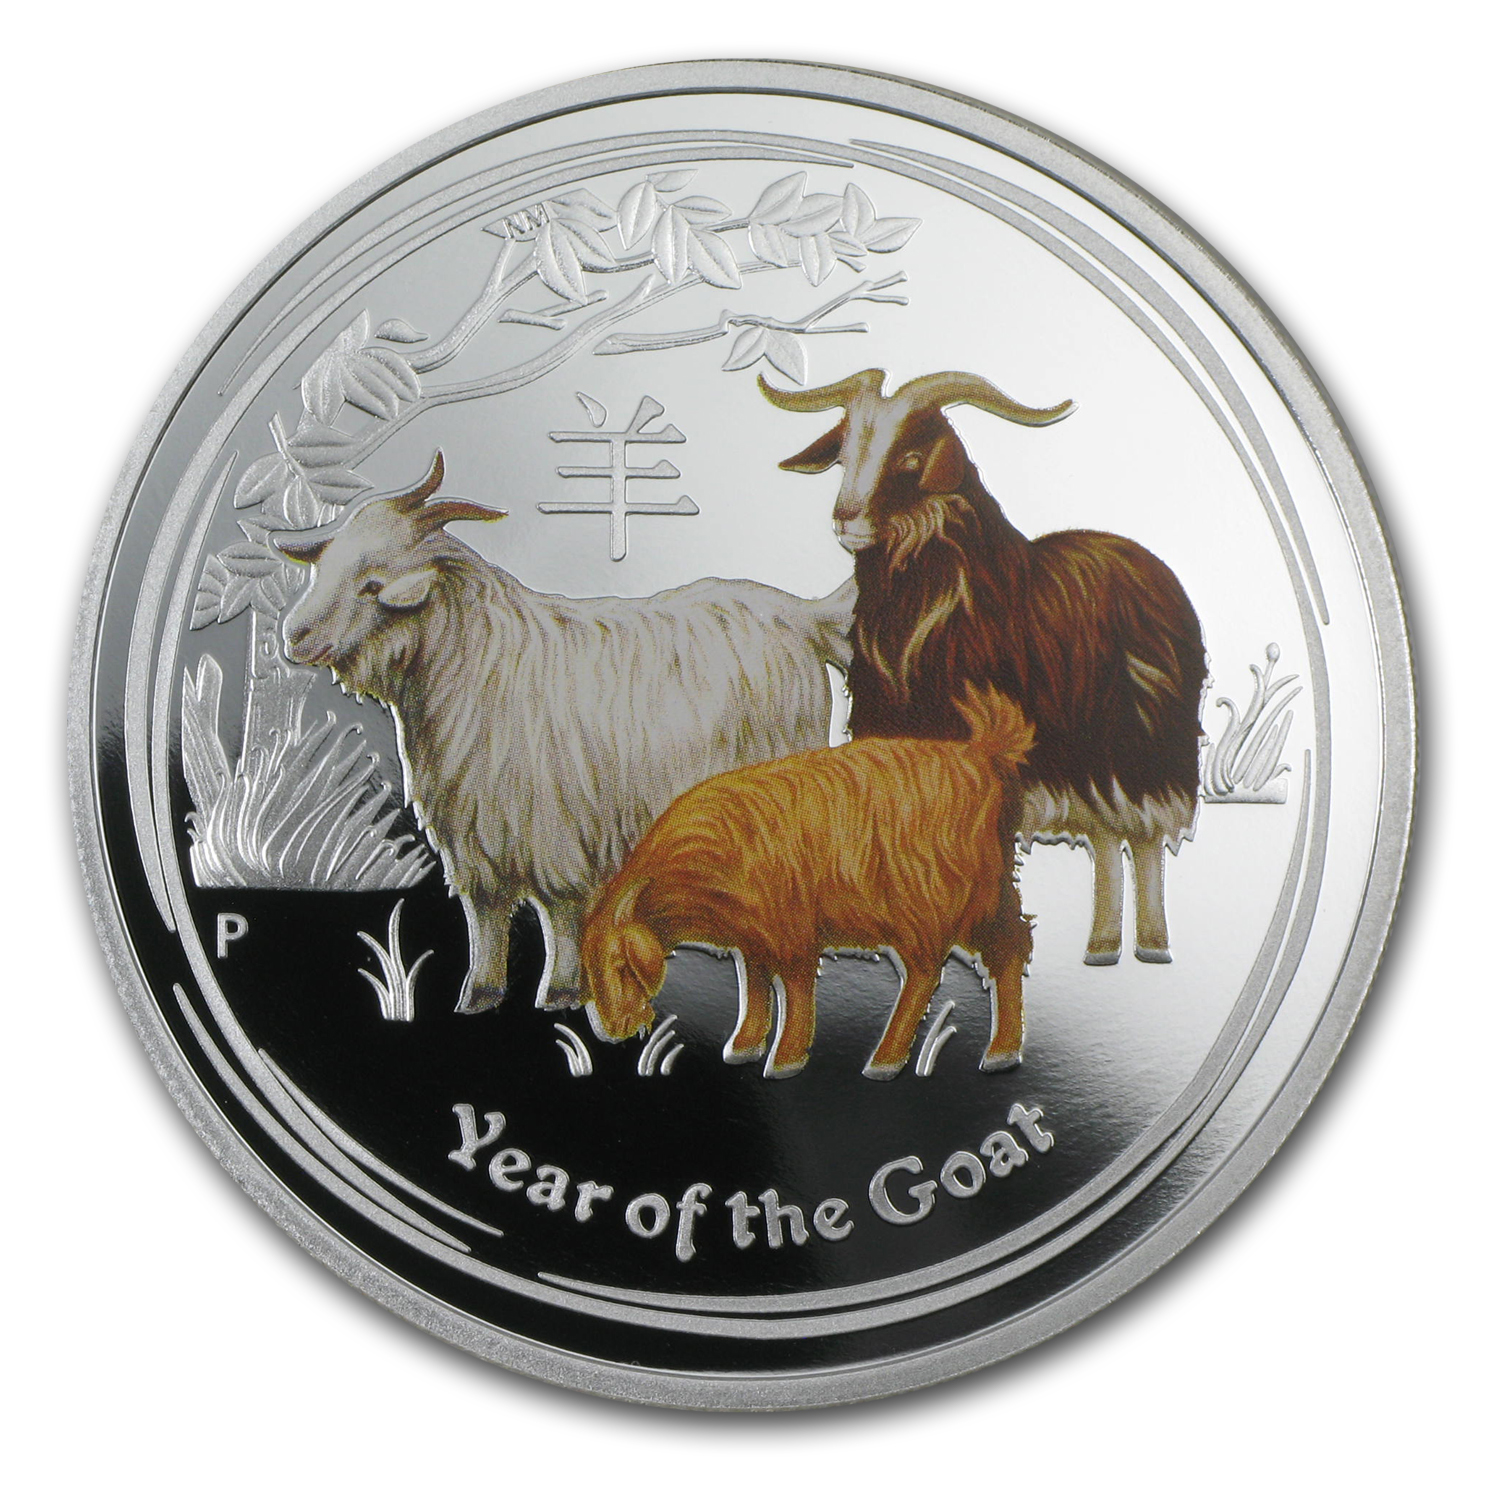 2015 1 oz Silver Australian Year of the Goat Proof (Colorized)